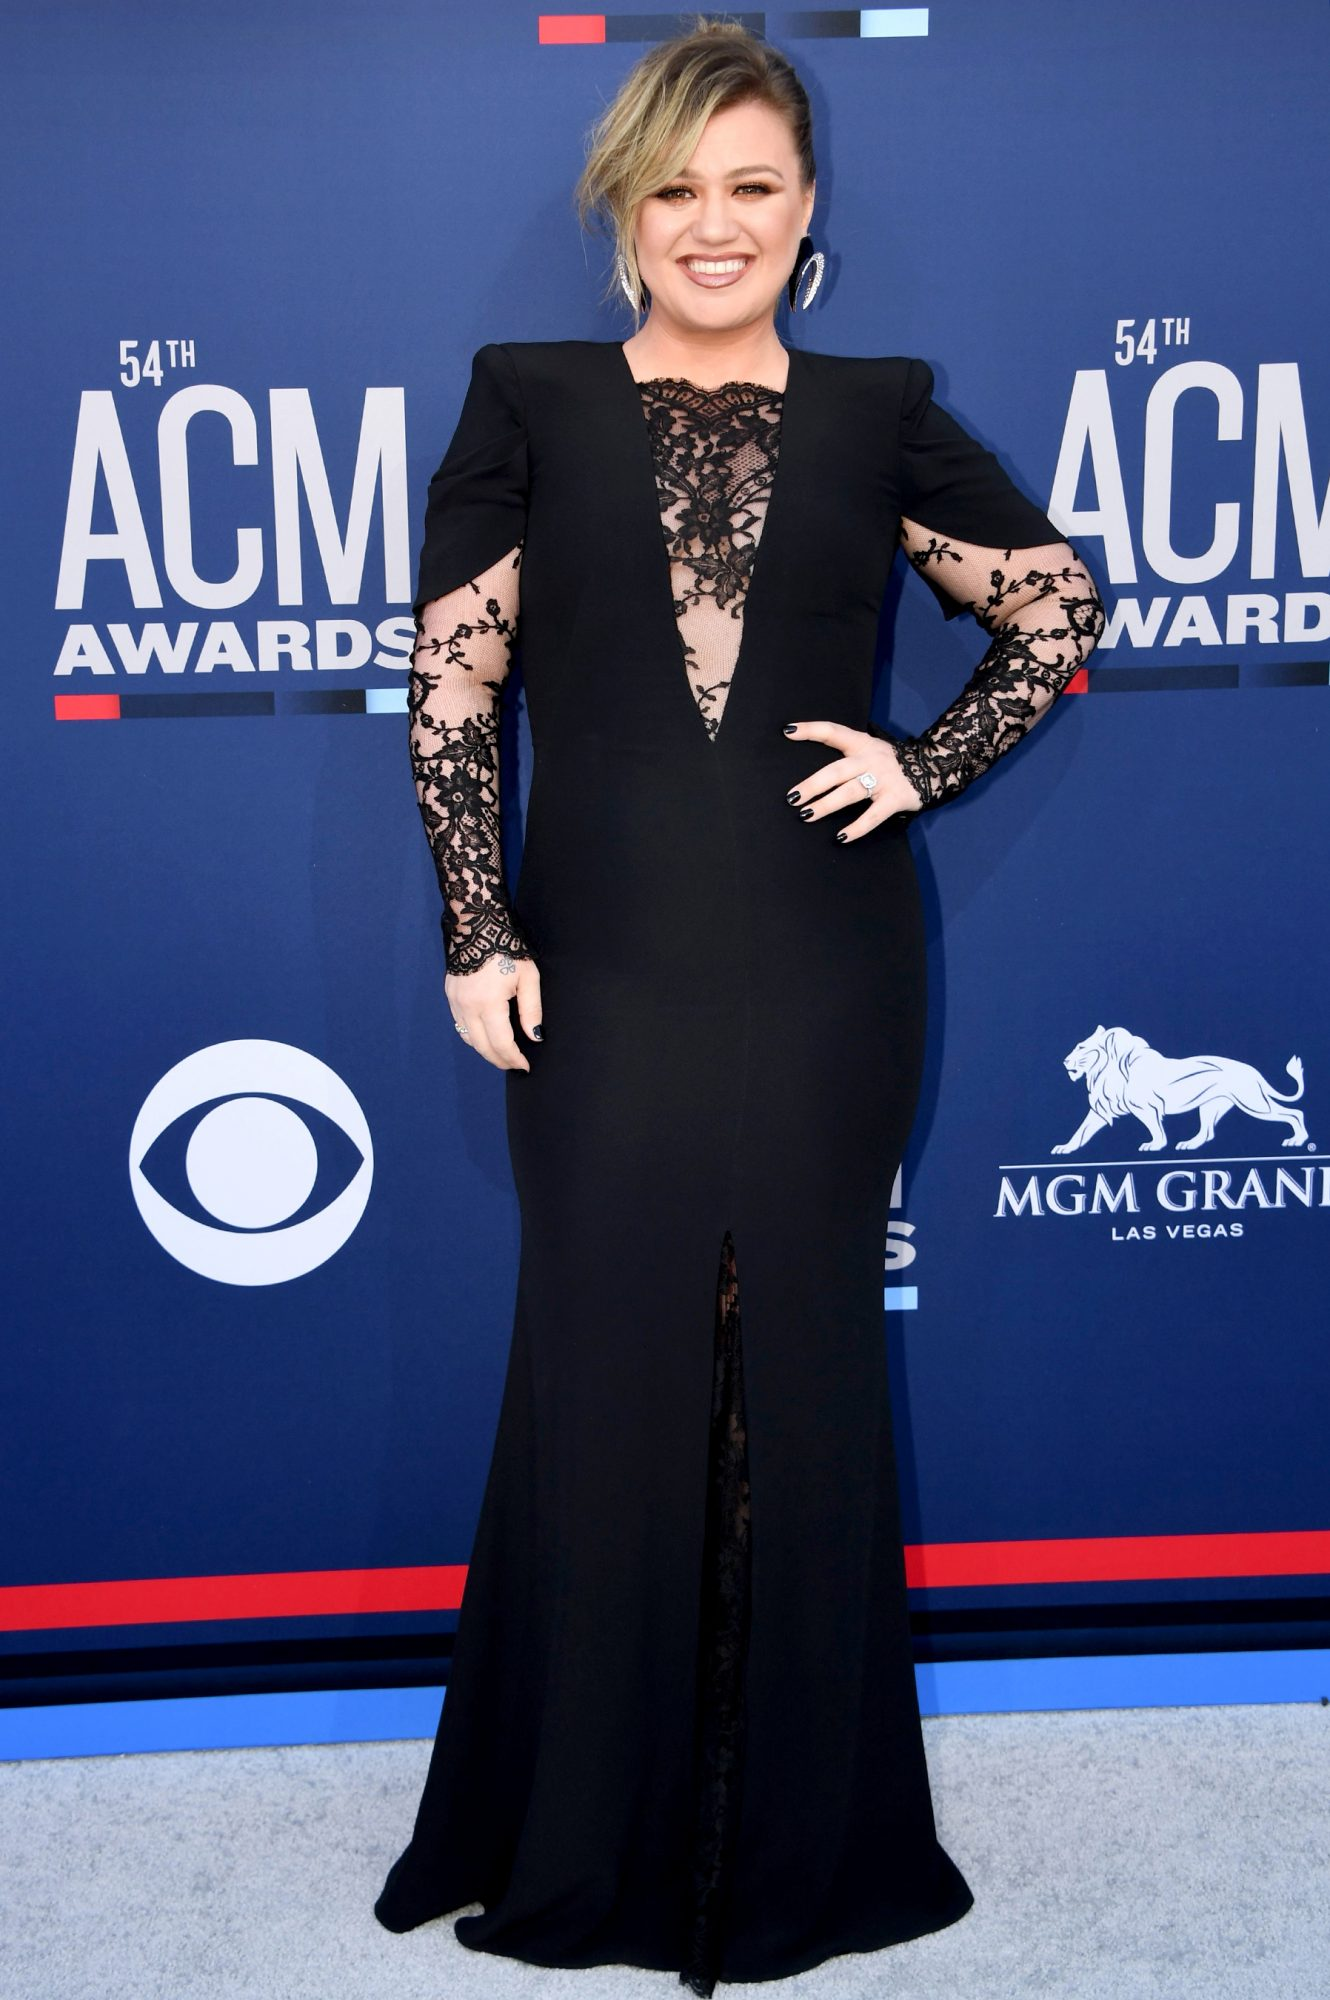 US-ENTERTAINMENT-MUSIC-COUNTRY-AWARD-ARRIVALS